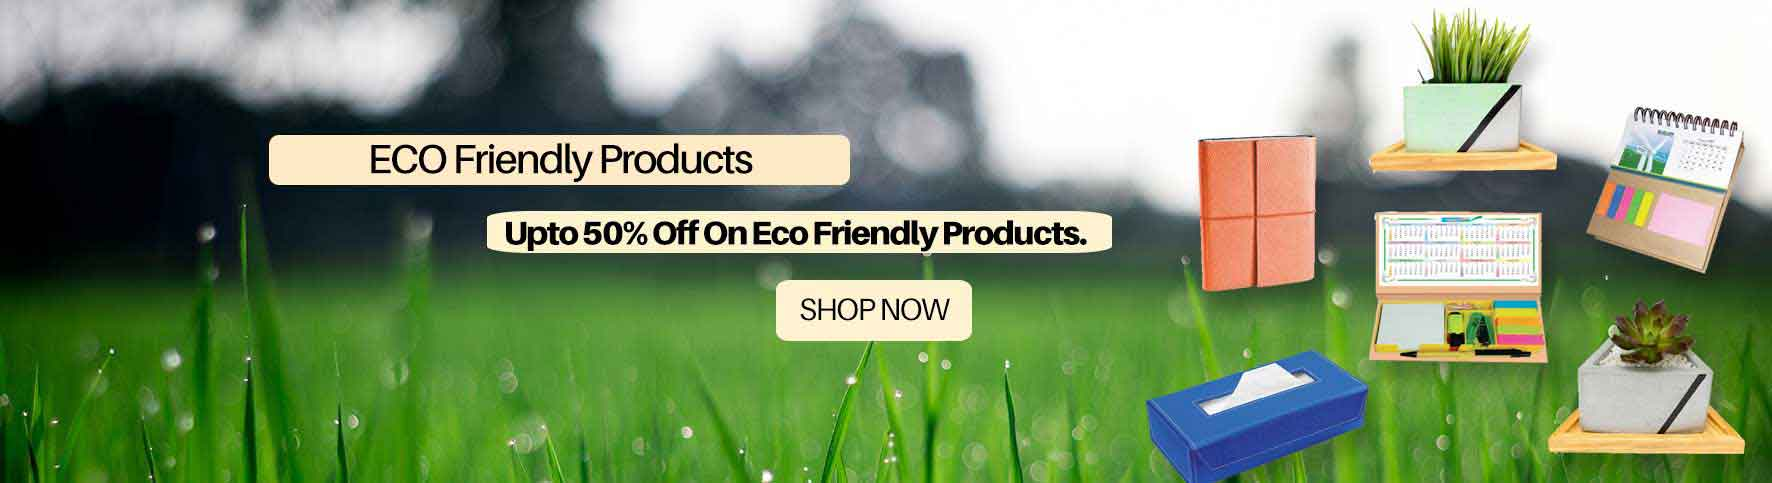 angel gifts eco friendly banner